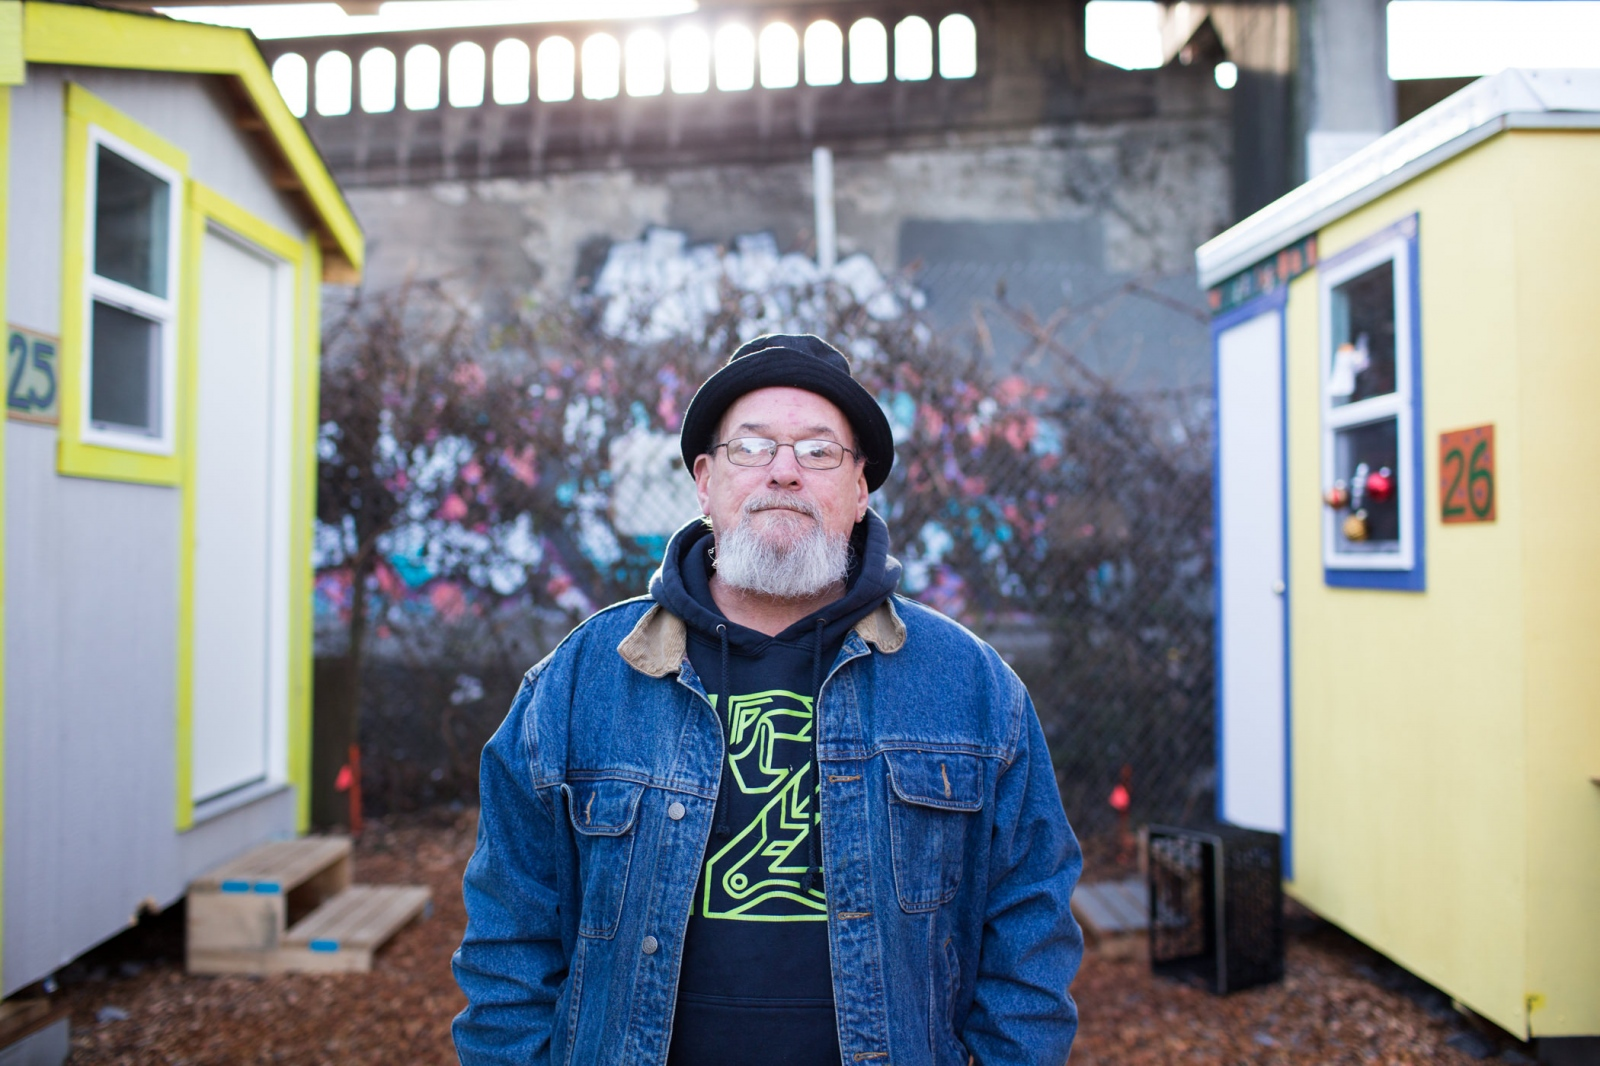 Tim C. atTent City 5 tiny houses in Seattle. 'Homeless at Christmas' for the Guardian